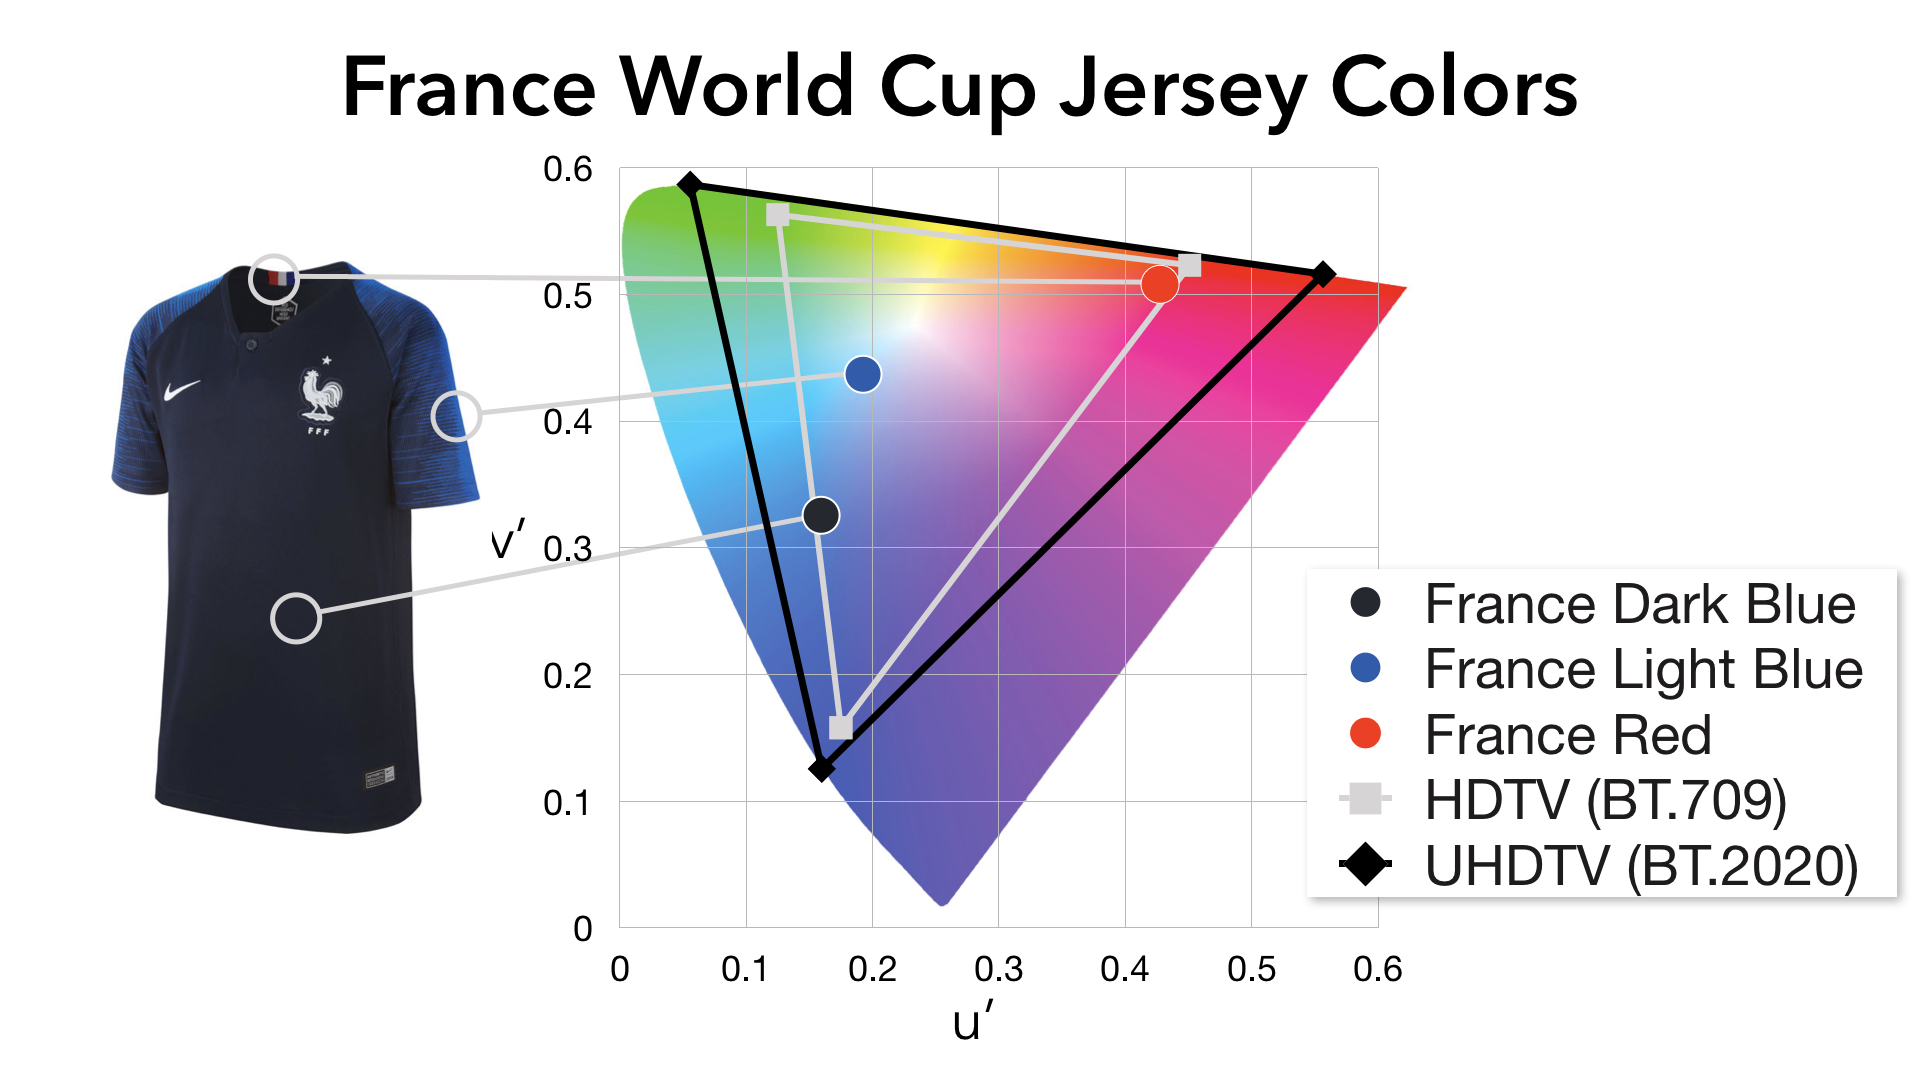 France World Cup Jersey Colors